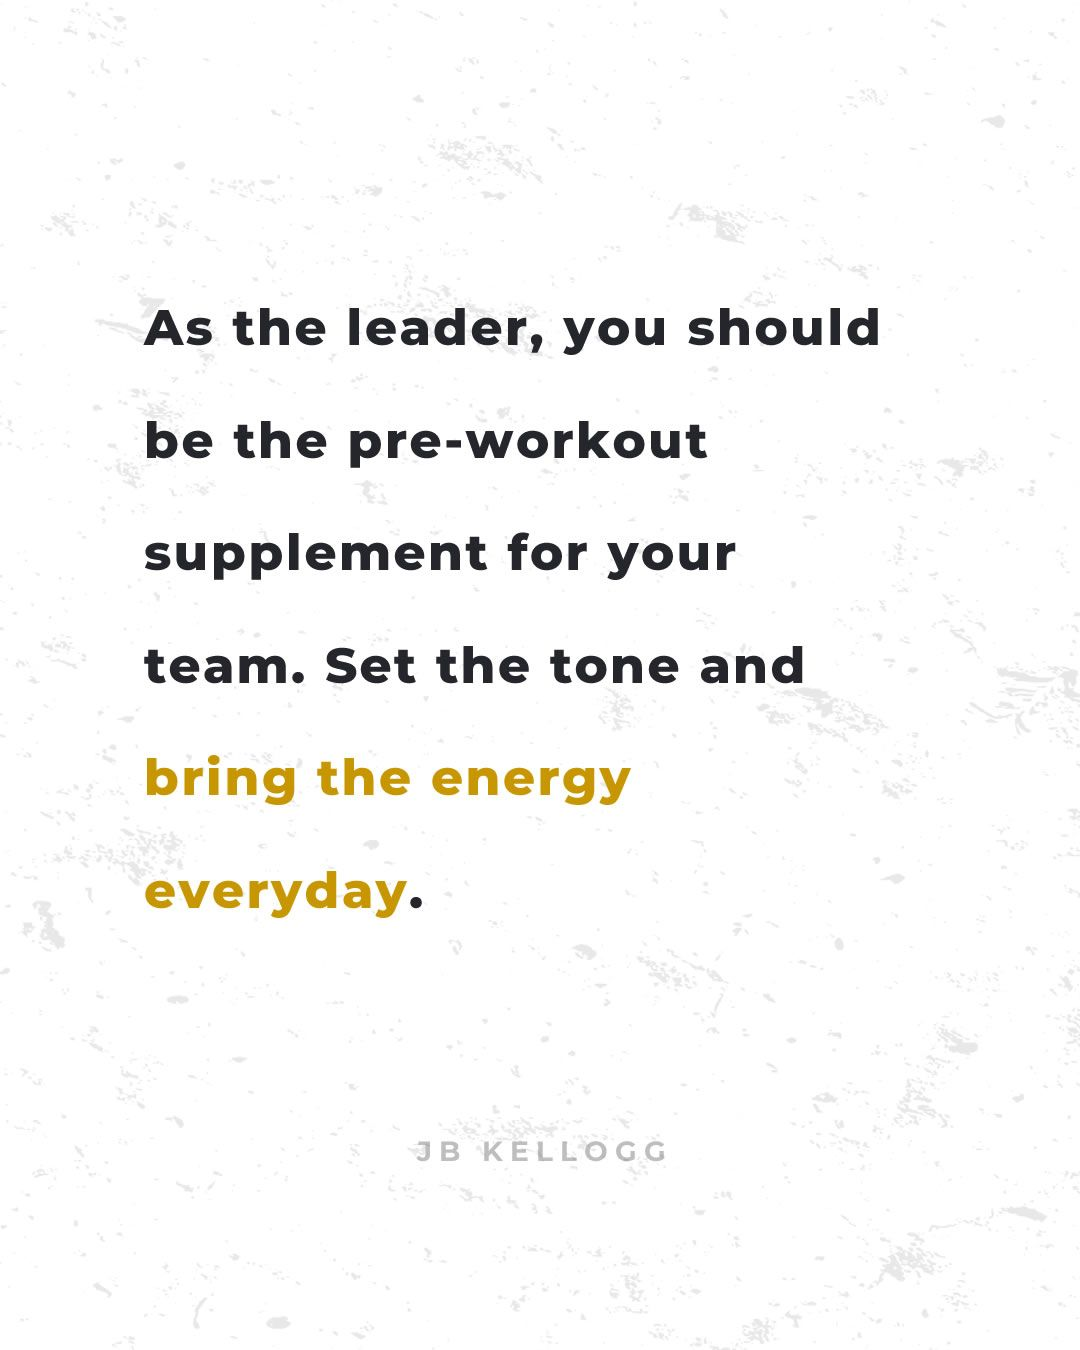 you're the pre-workout supplement for your team - quote by jb kellogg.jpg